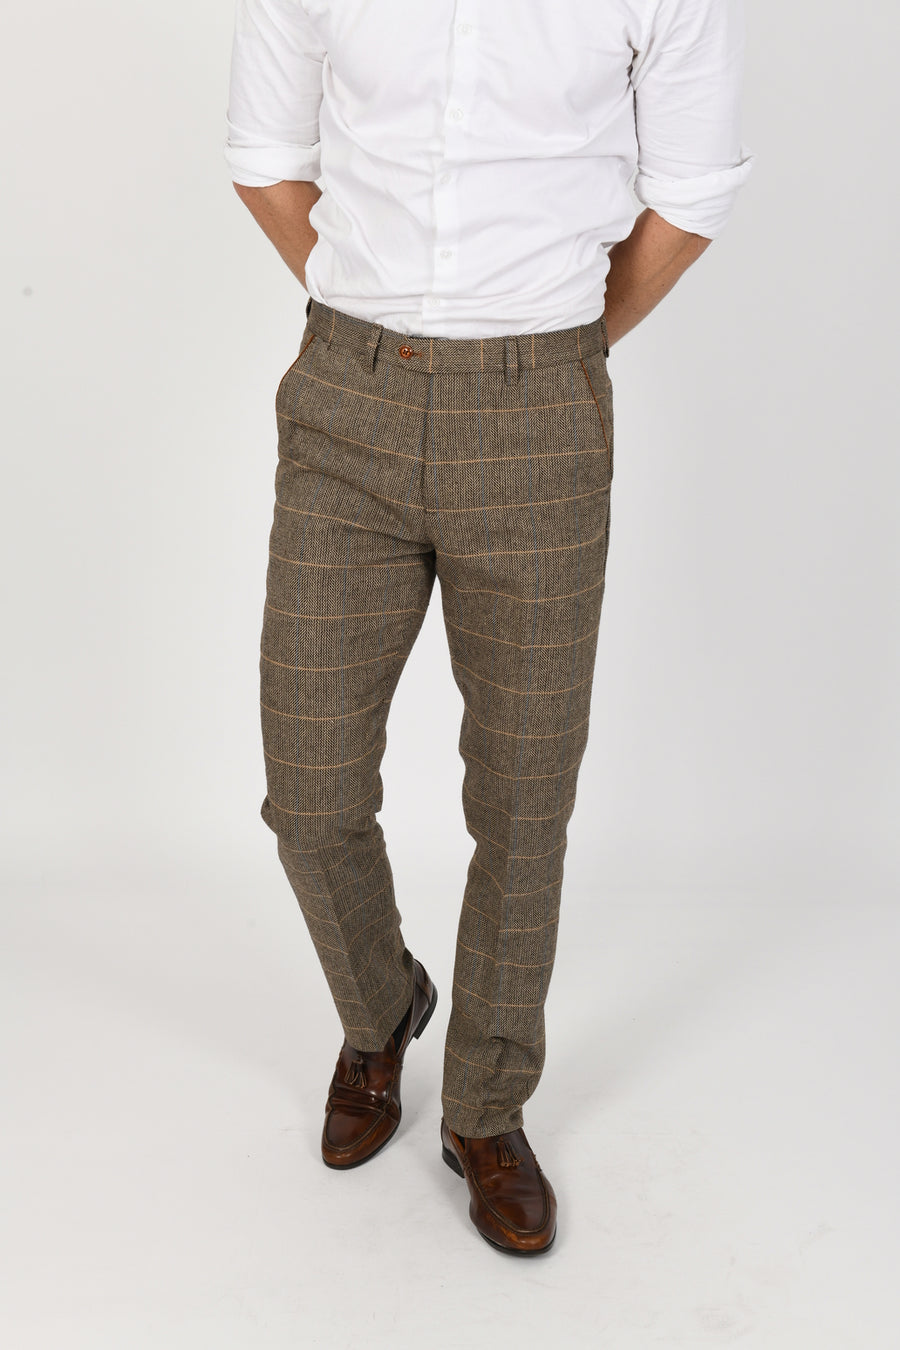 Ted Wedding Trousers - Wedding Suit Direct